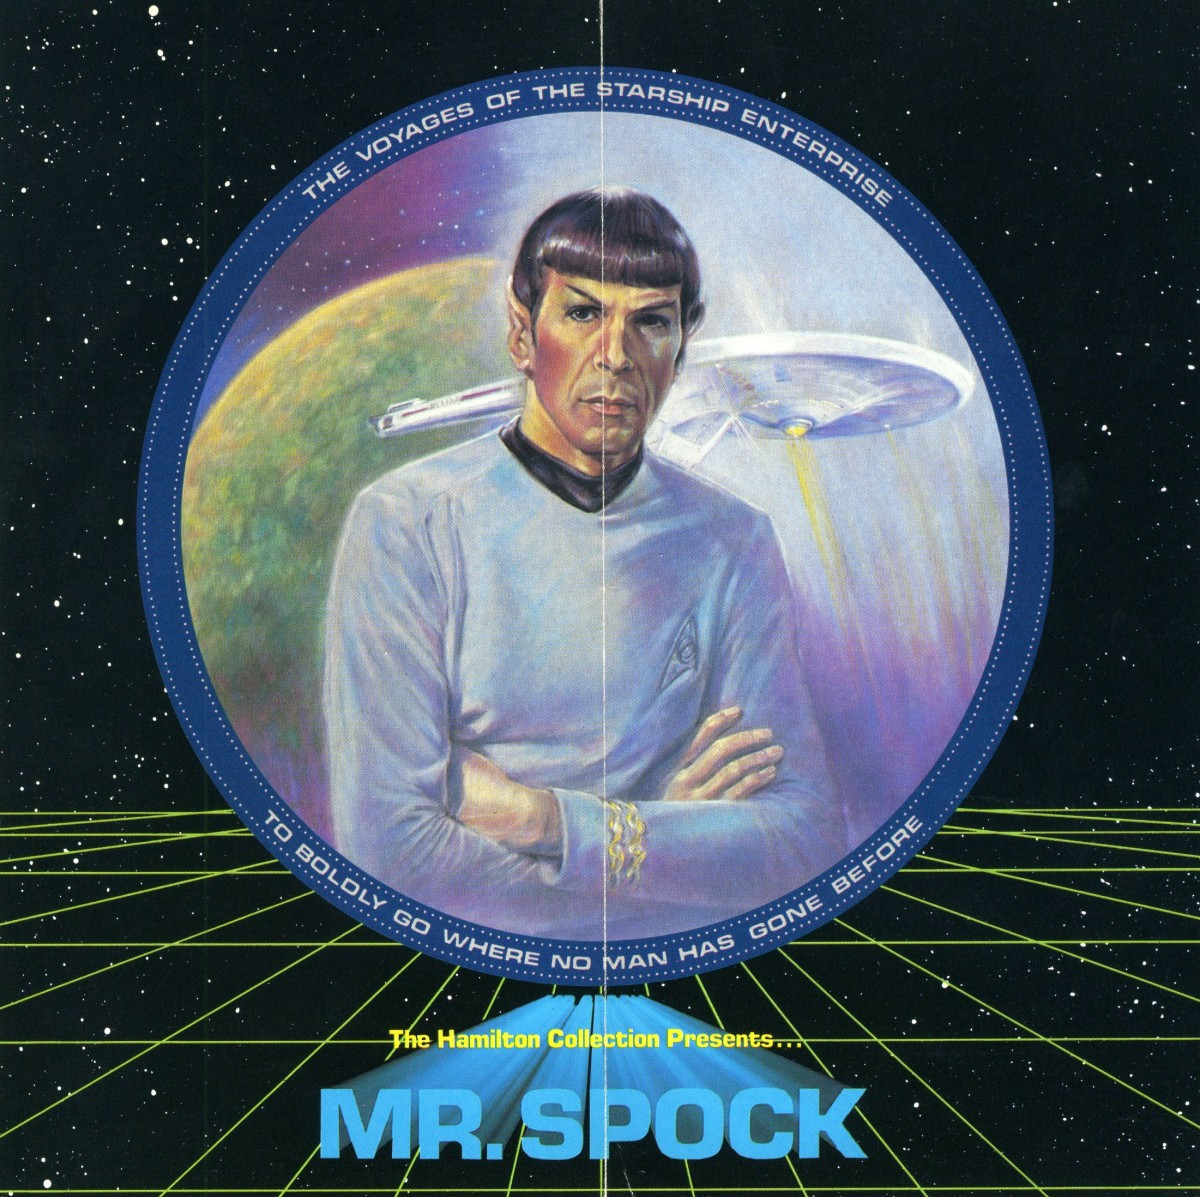 Mr. Spock was the first issue in the STAR TREK plate collection. This was the first ever limited edition plate inspired by the voyages of the Starship Enterprise